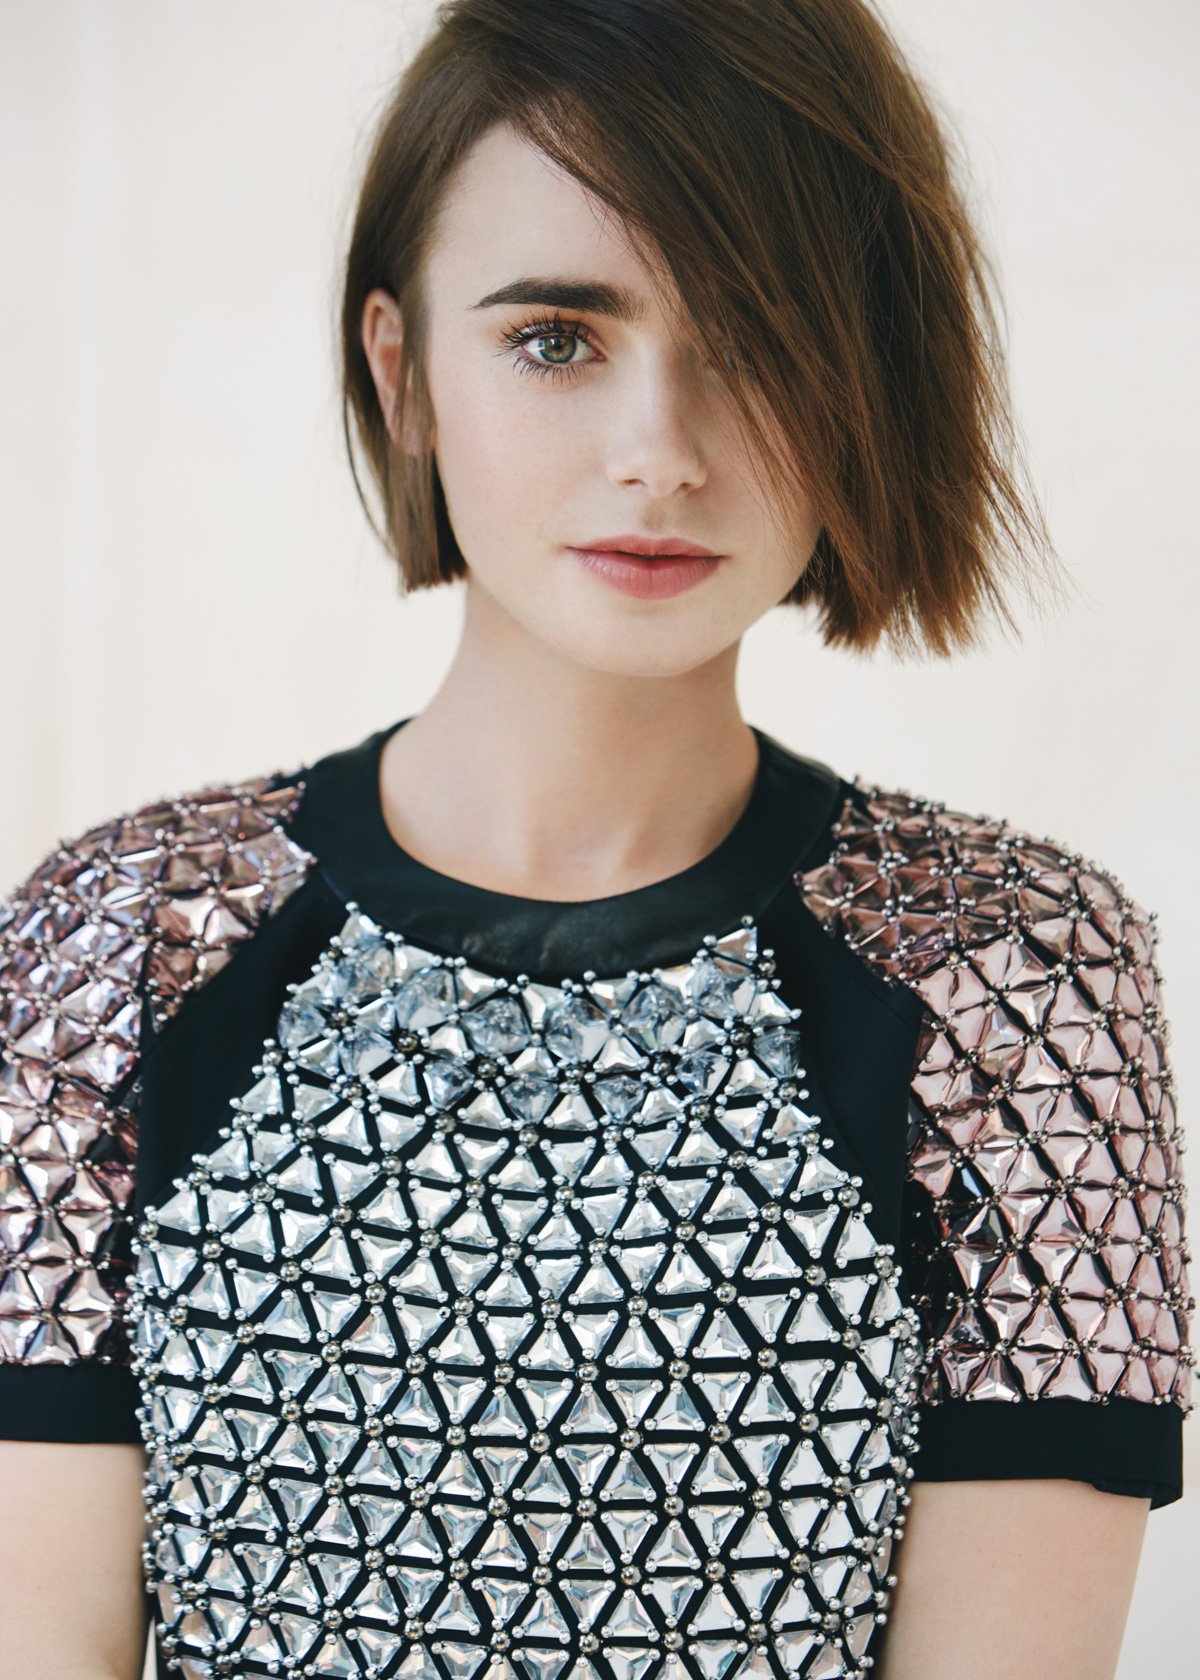 House Of Usher Lily Collins by David Roemer 01